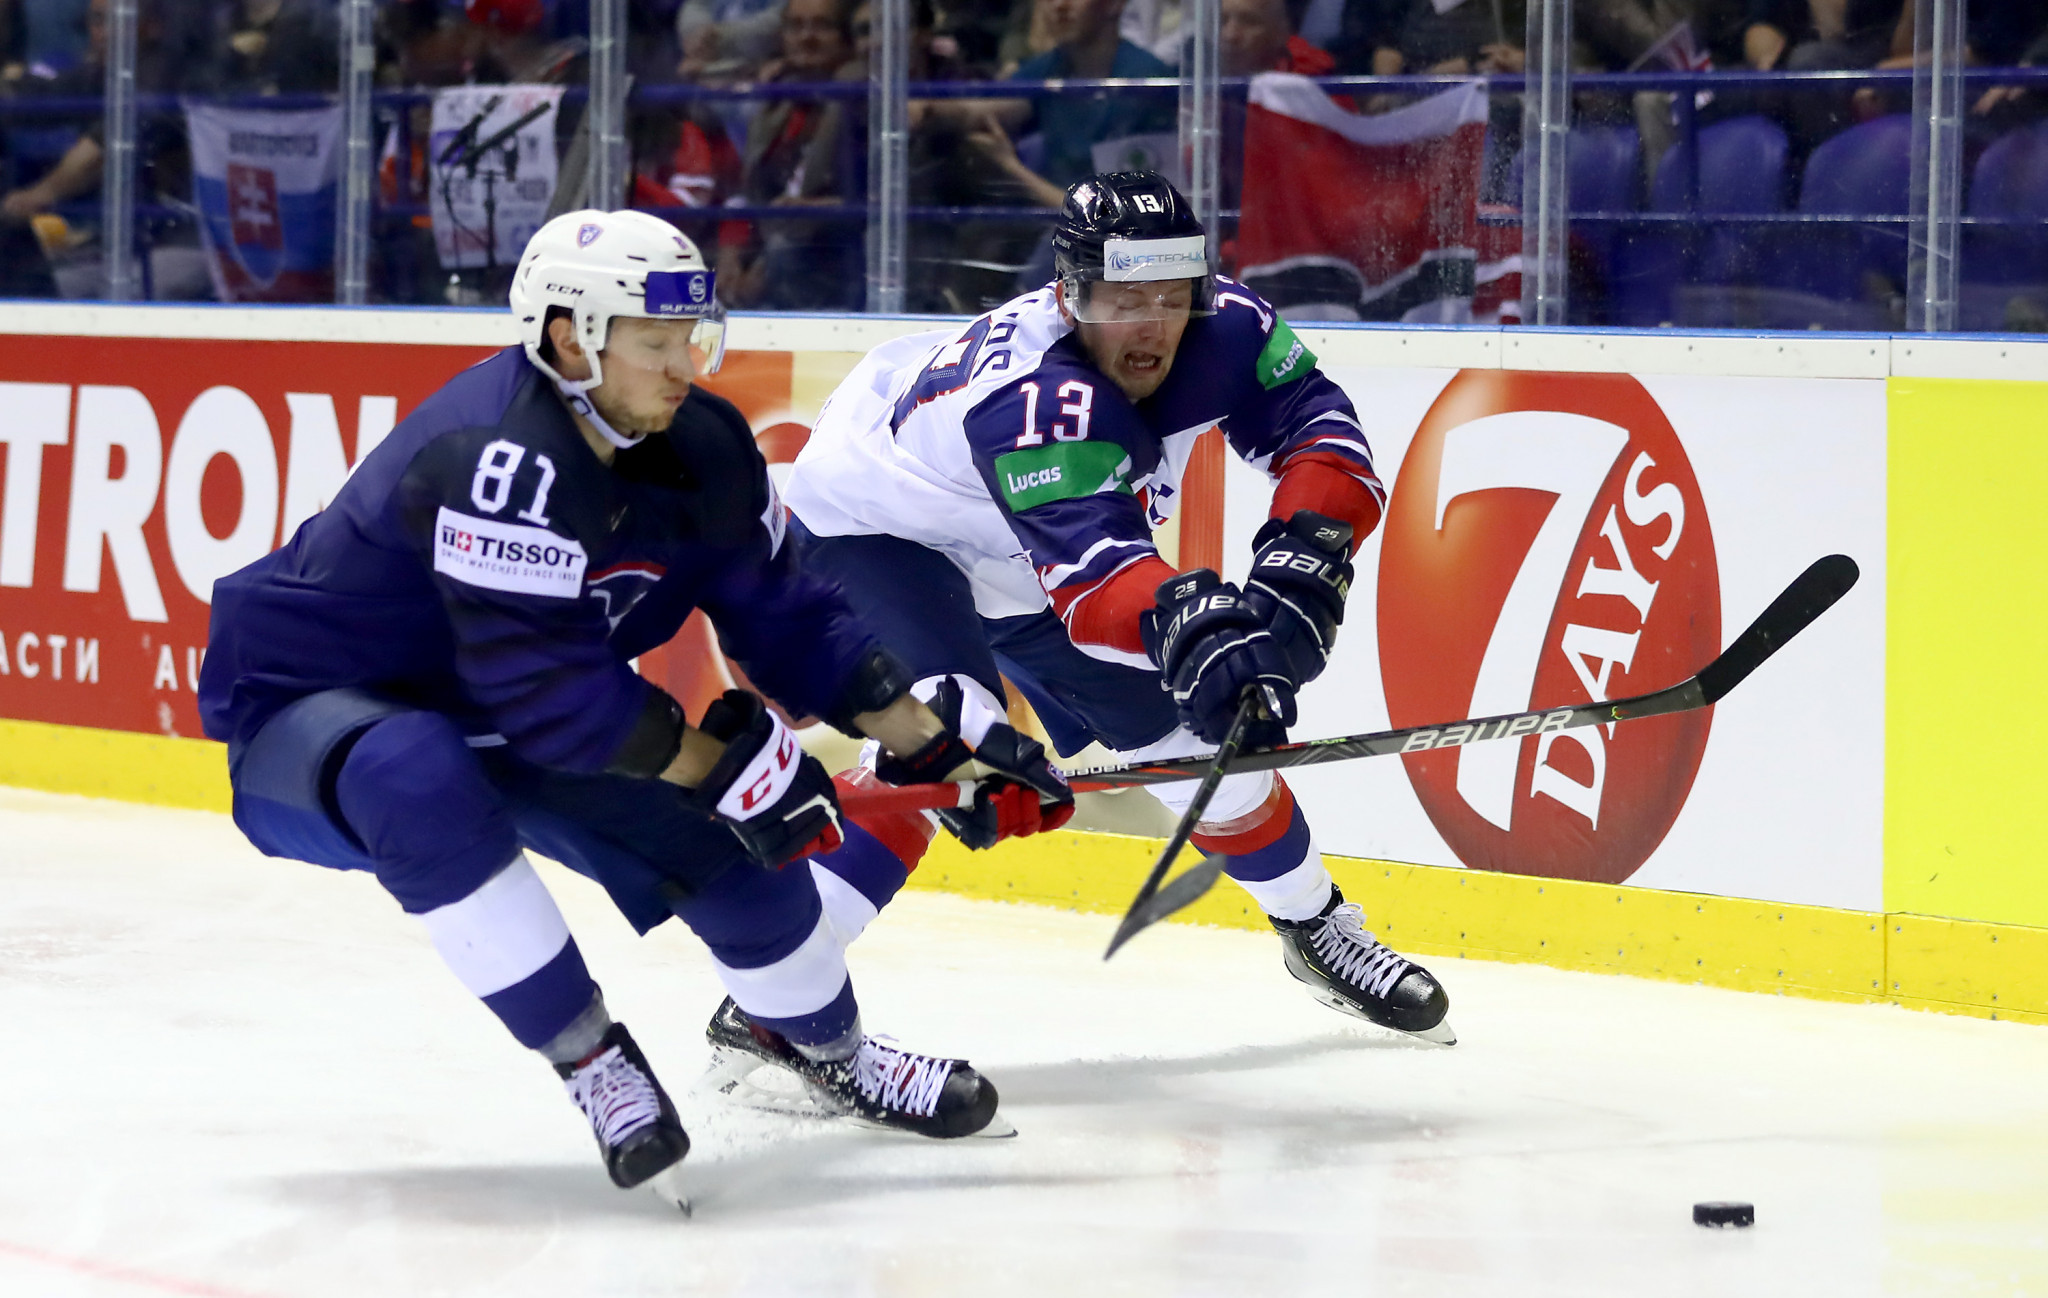 Latvia and France win high-scoring affairs on opening day of final Beijing 2022 ice hockey qualifying tournaments